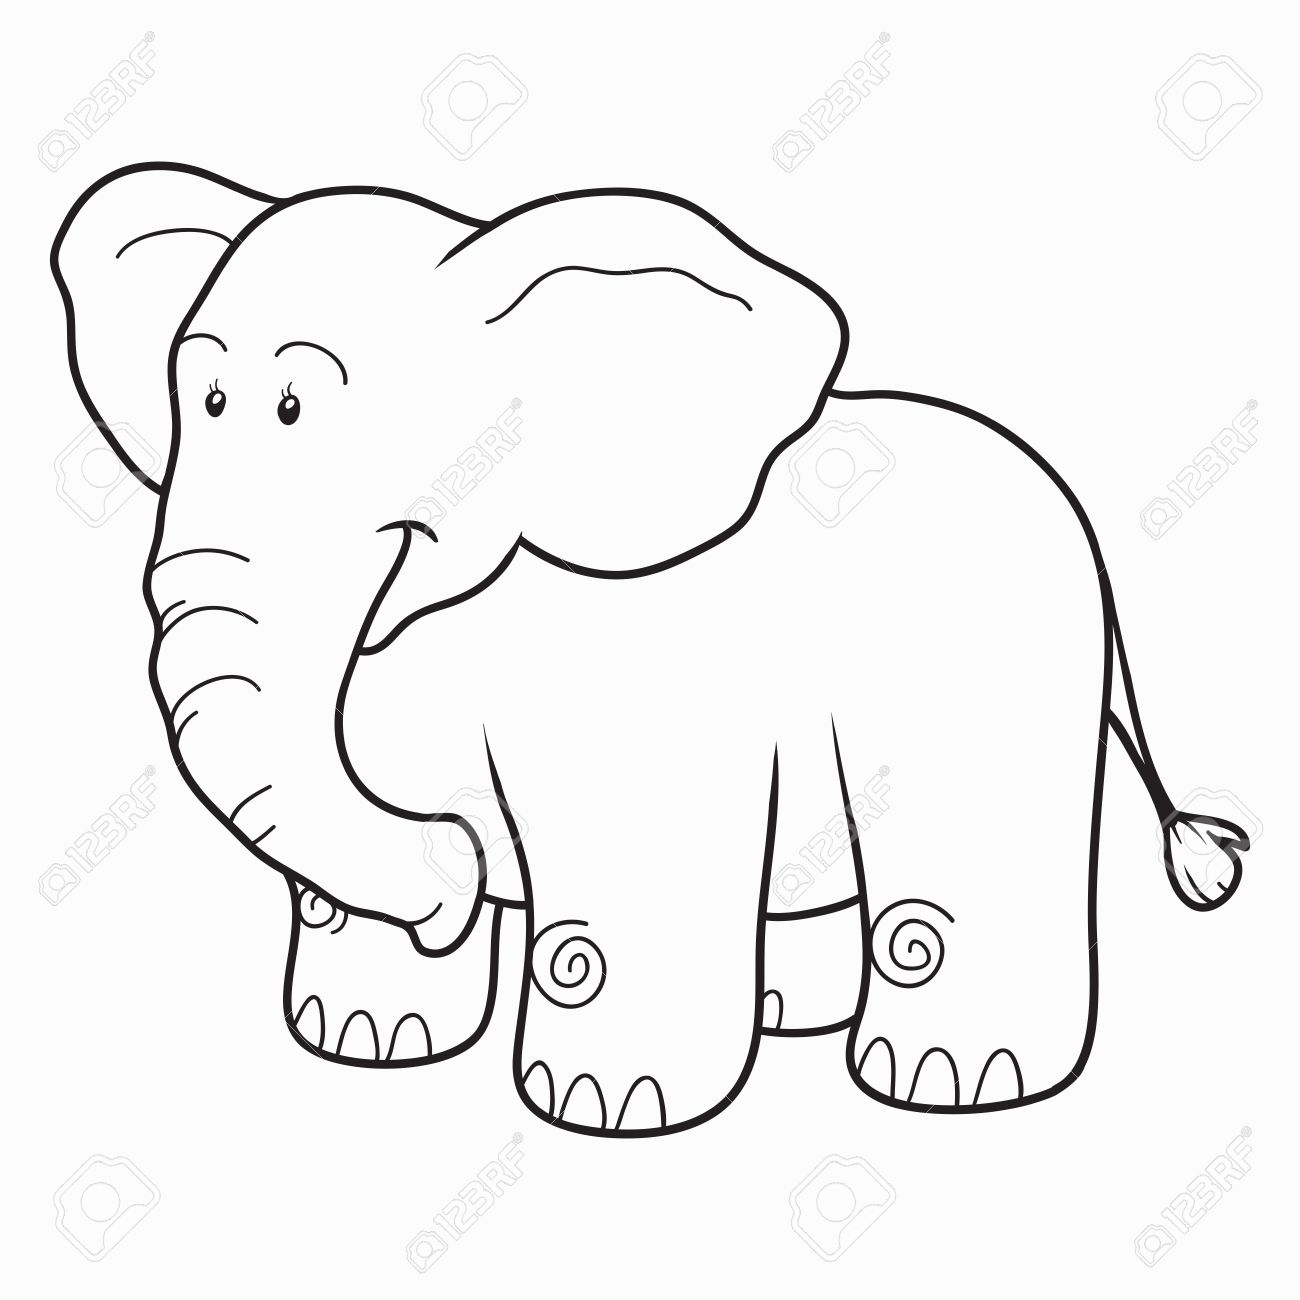 Coloring Book (elephant) Royalty Free Cliparts, Vectors, And Stock ...